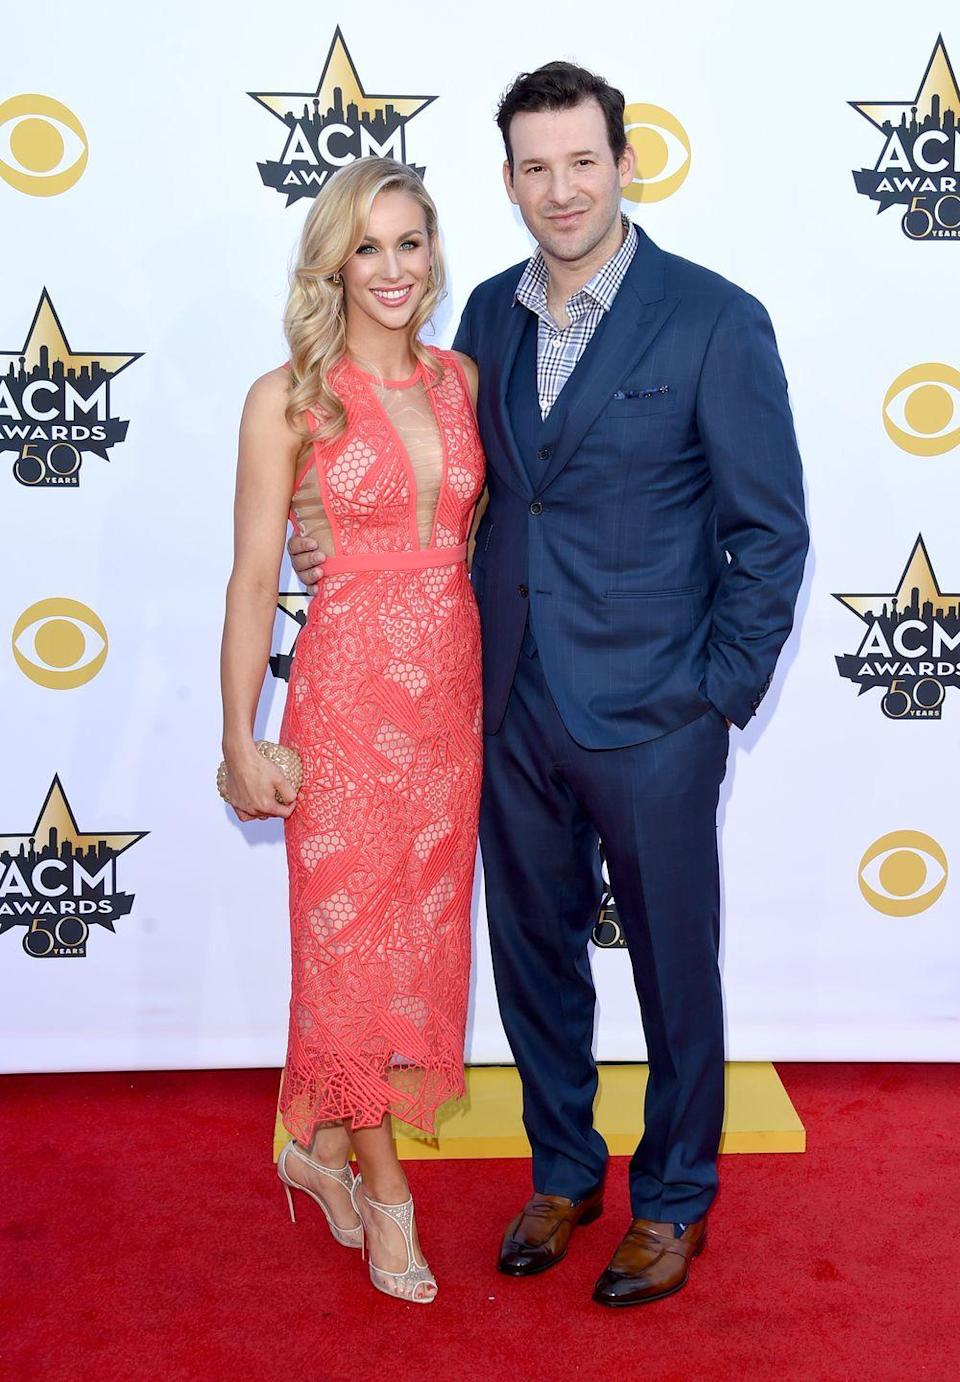 "<p>Journalist Candice Crawford made her parents hide in the bathroom when former football player and analyst Tony Romo took her out <a href=""https://www.countryliving.com/life/entertainment/a29589577/tony-romo-wife-candice-crawford/"" rel=""nofollow noopener"" target=""_blank"" data-ylk=""slk:on their first date"" class=""link rapid-noclick-resp"">on their first date</a>. Two years after meeting, the couple tied the knot in front of <a href=""https://people.com/celebrity/inside-tony-romo-and-candice-crawfords-wedding/"" rel=""nofollow noopener"" target=""_blank"" data-ylk=""slk:600 of their closest friends in 2011"" class=""link rapid-noclick-resp"">600 of their closest friends in 2011</a>. </p>"